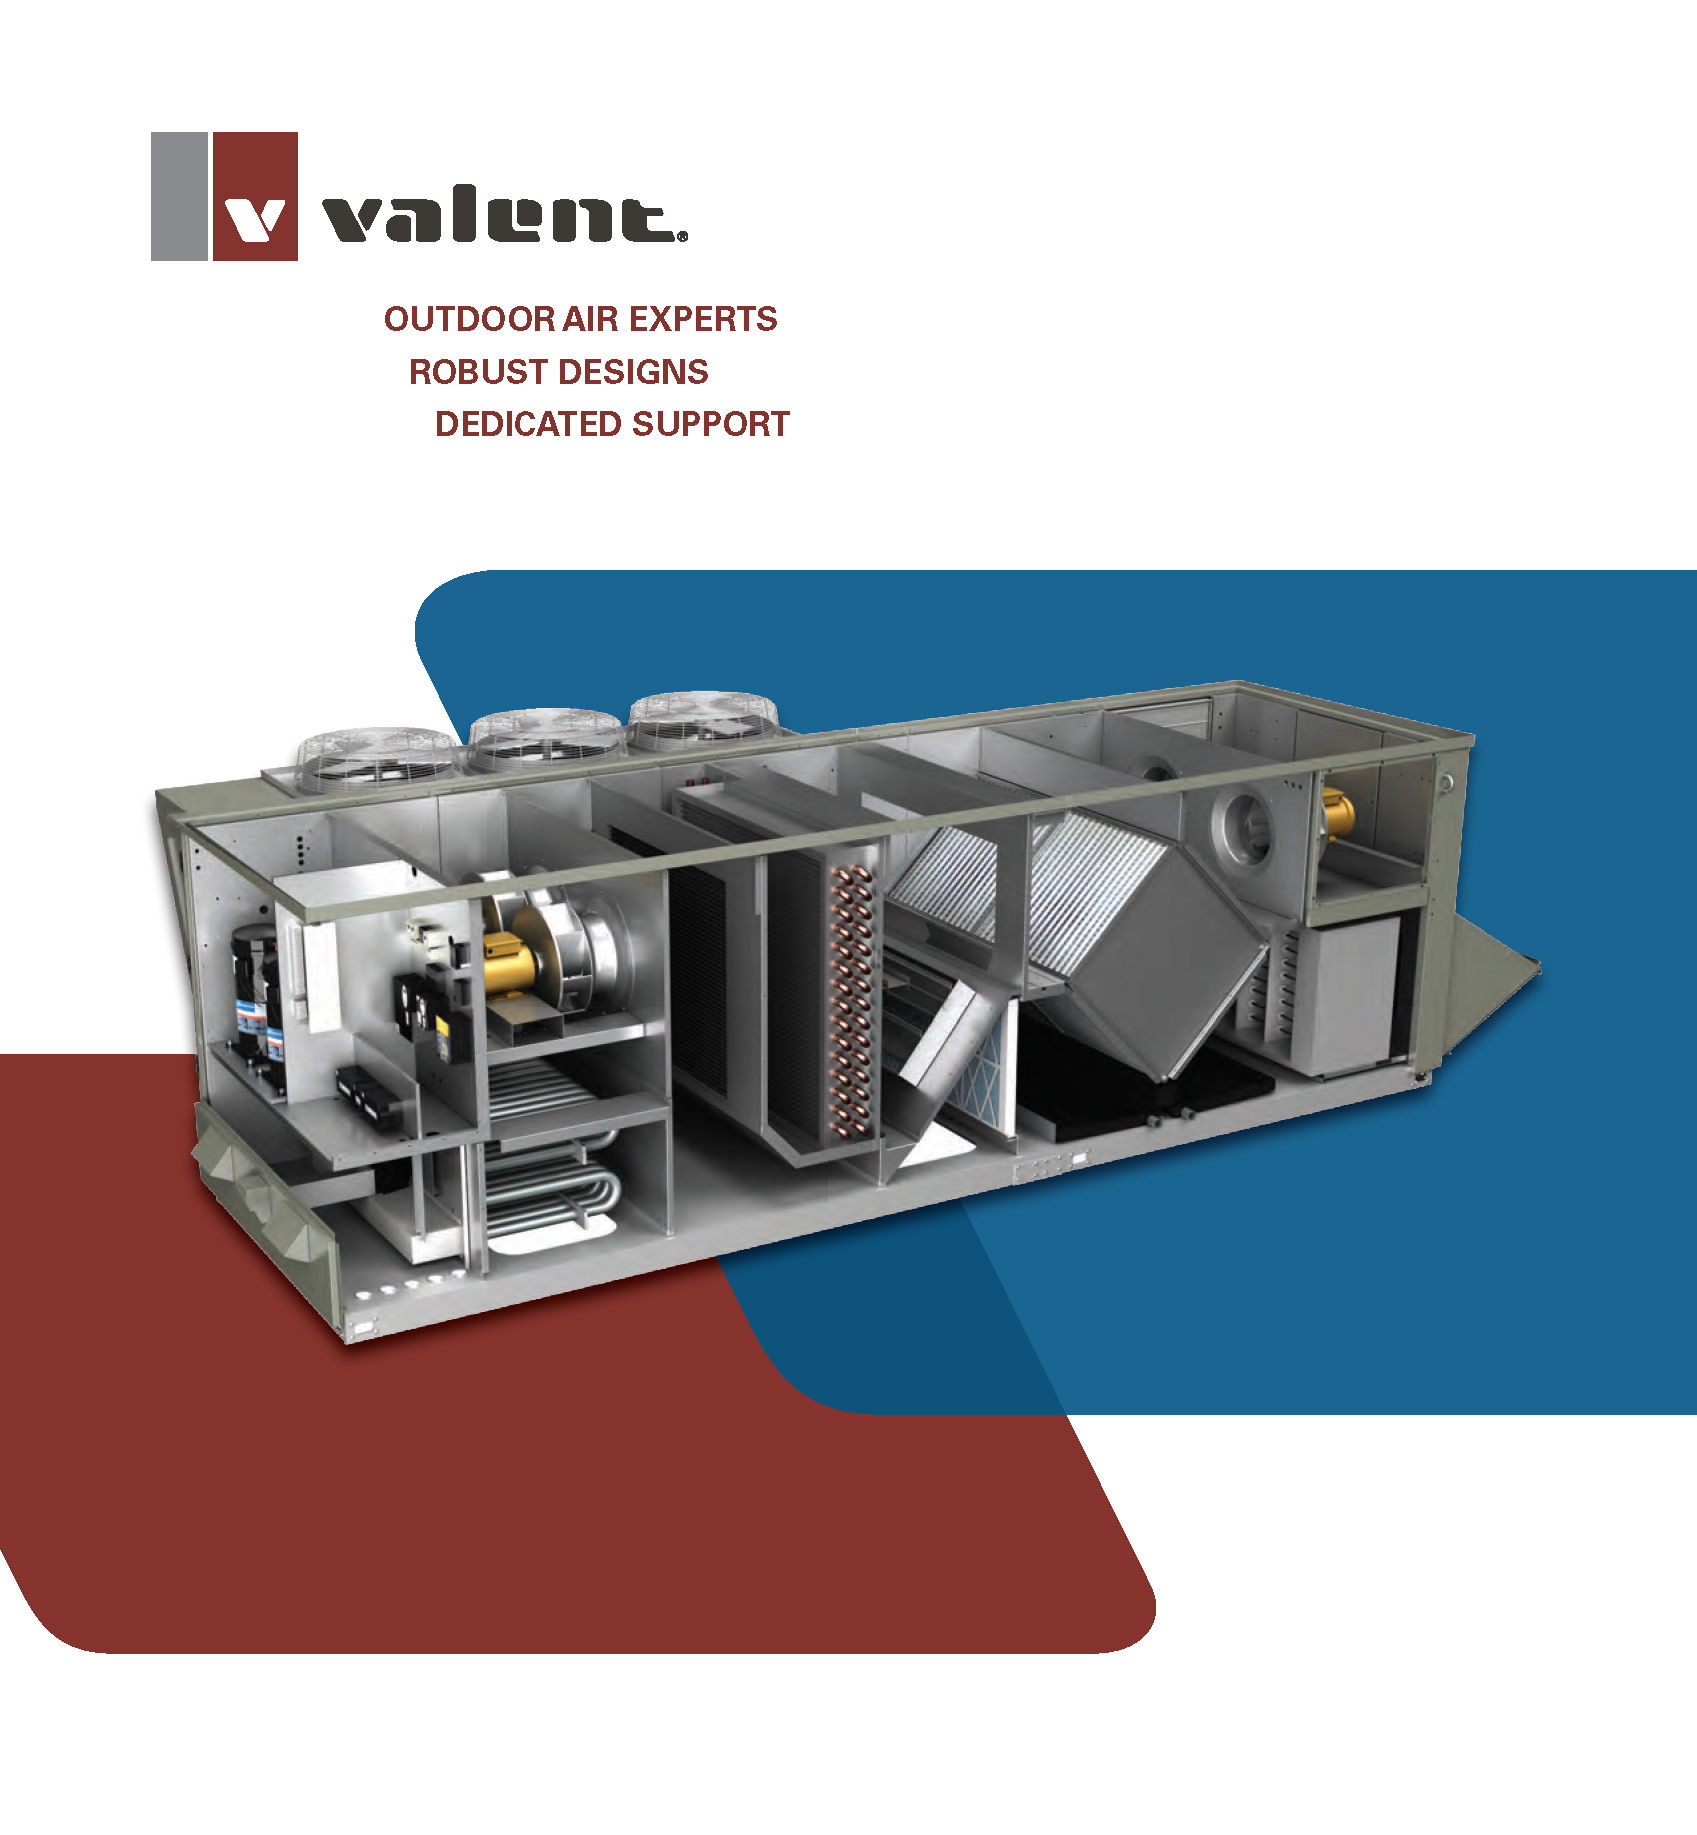 STARTING UP A VALENT UNIT IS AS EASY AS 1-2-3!   OUTDOOR AIR EXPERTS